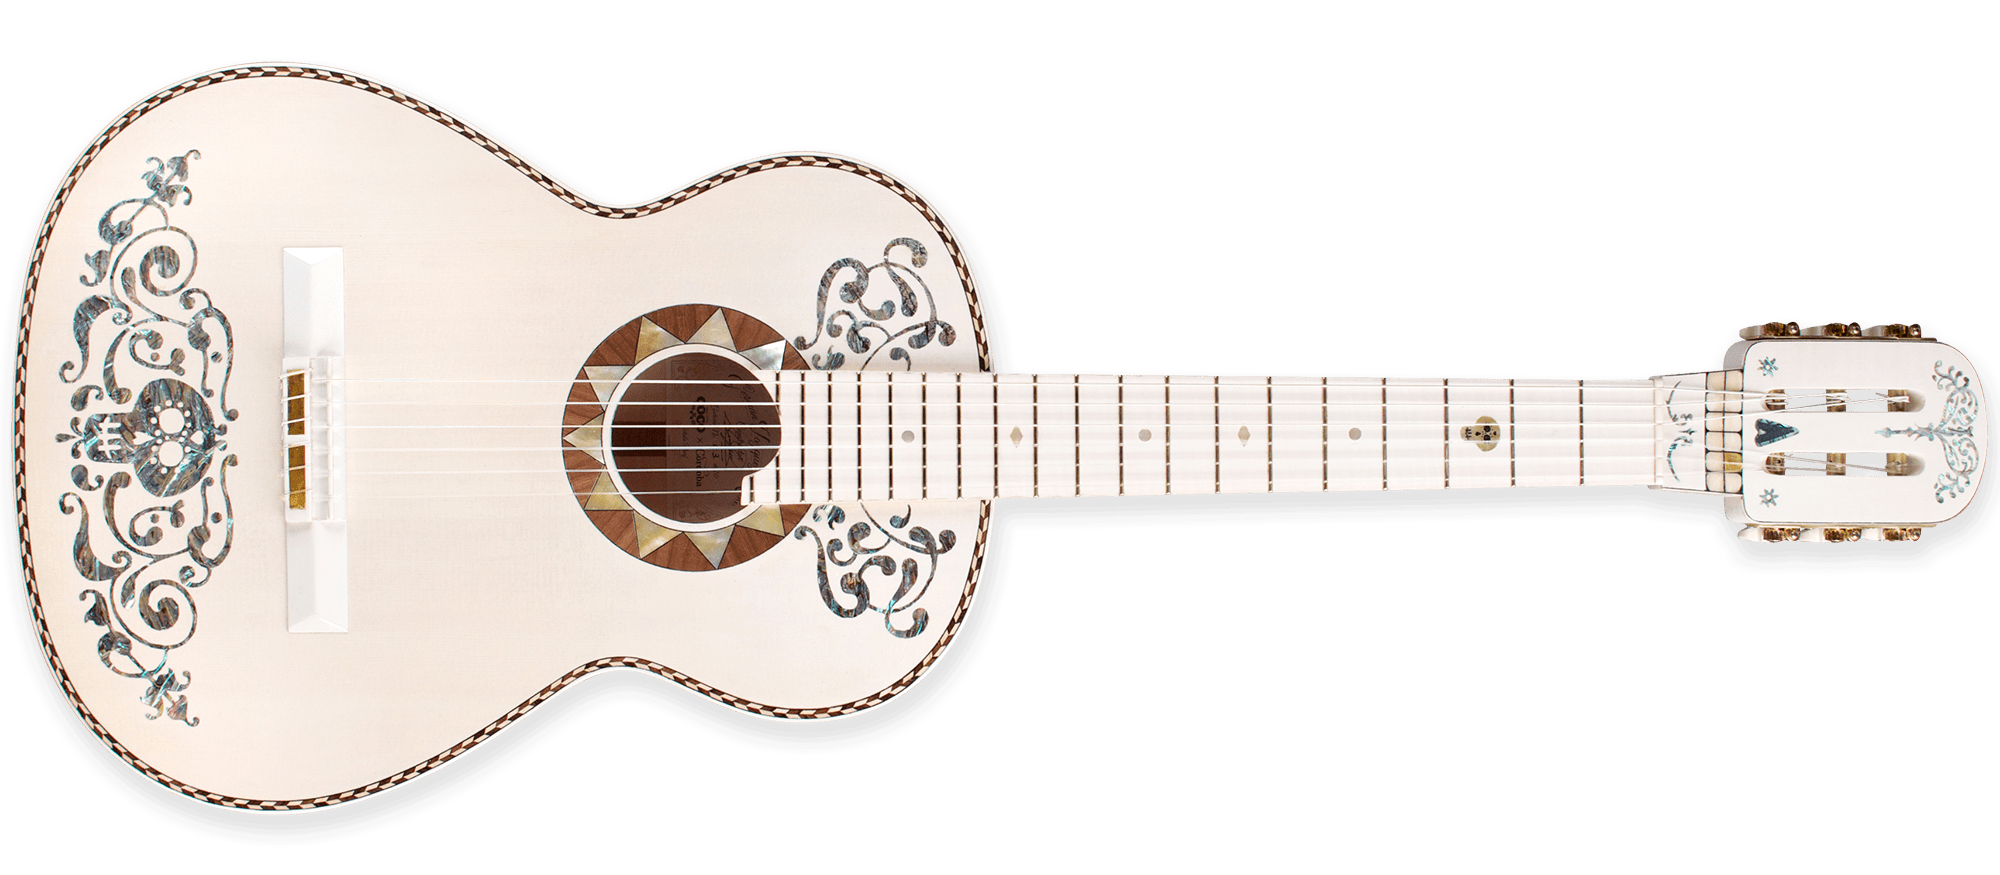 Coco movie guitar png. Rookies the a sensation